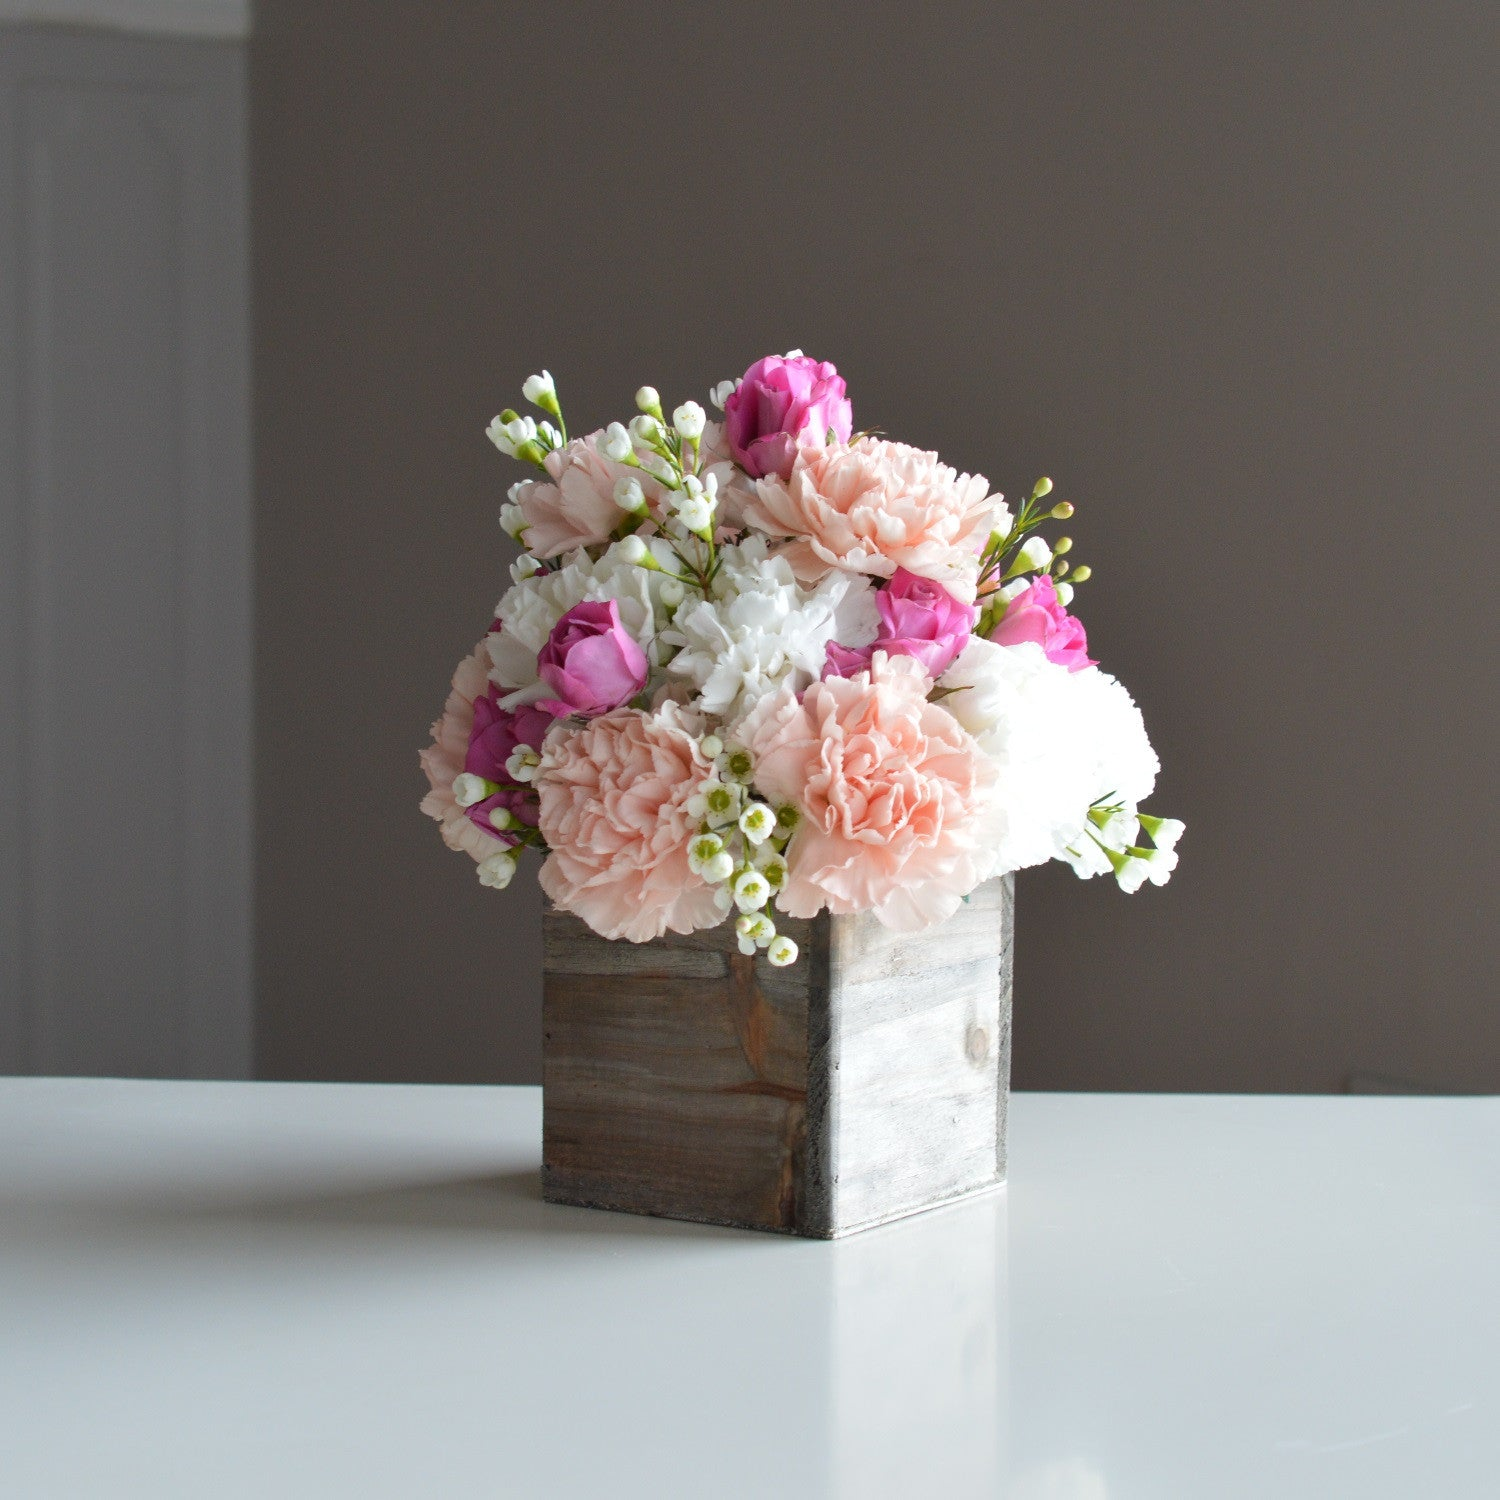 Order birthday flowers online choice image flower wallpaper hd order flowers online fresh flowers flower delivery san francisco pink and purple flowers spray roses pink izmirmasajfo